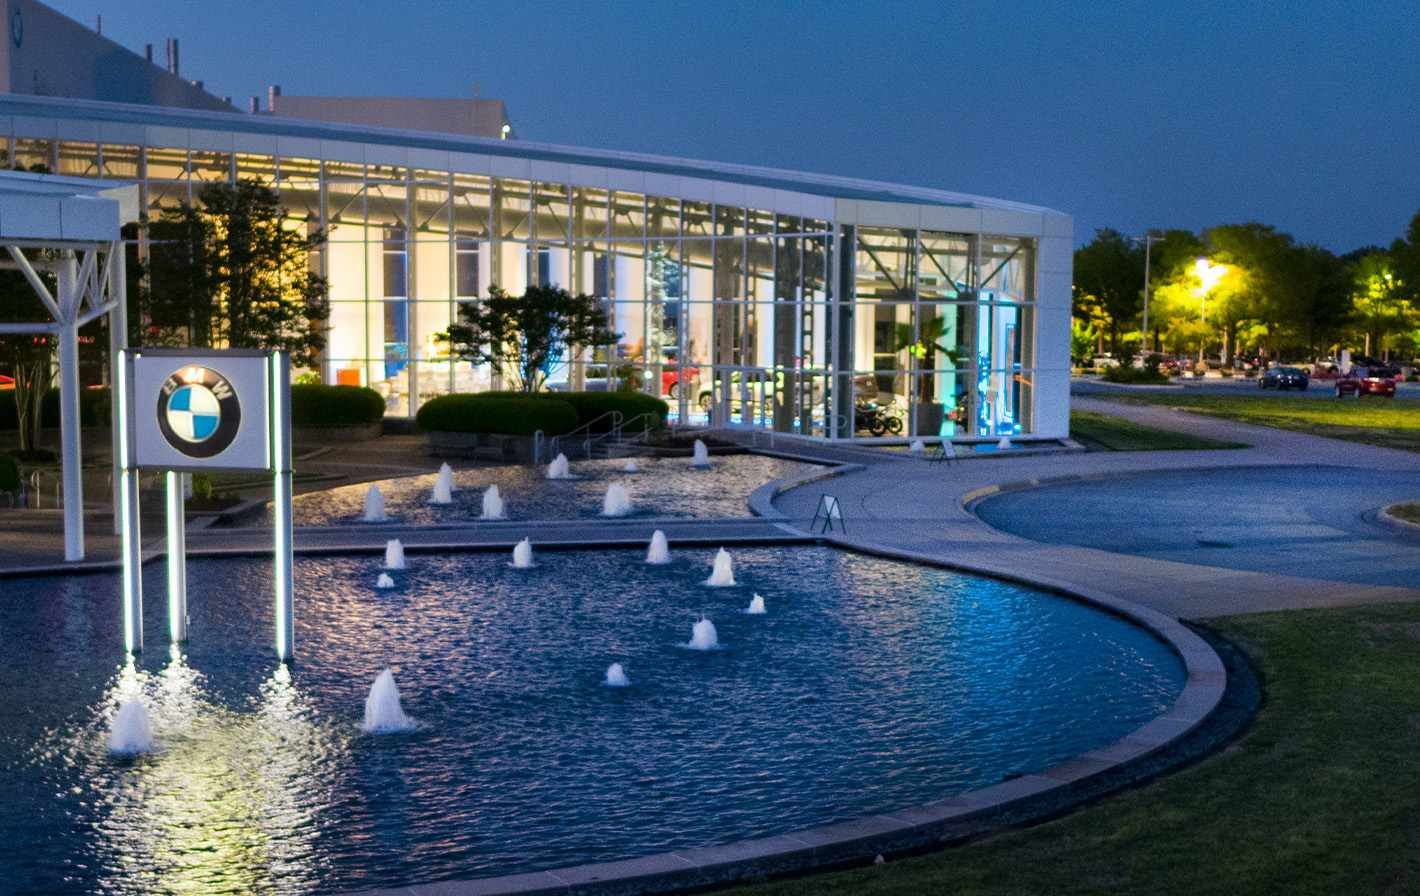 Fountain with a BMW sign in it in front of a low, modern glass and steel building